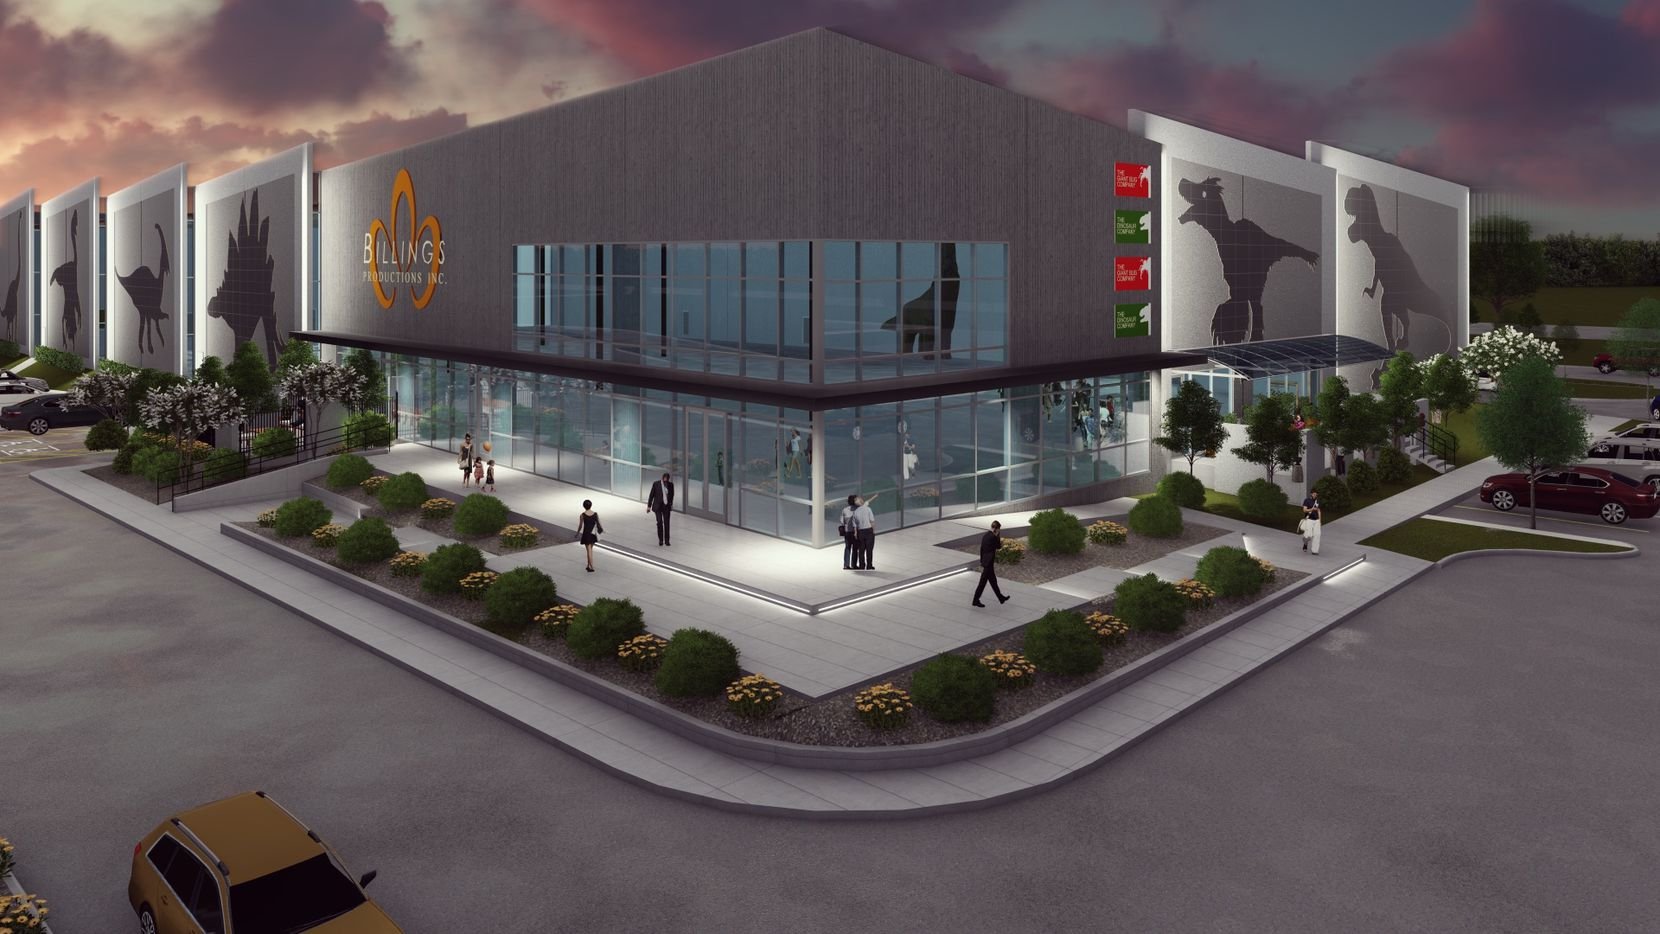 Billings Productions' new Allen building will house its dinosaur making business.